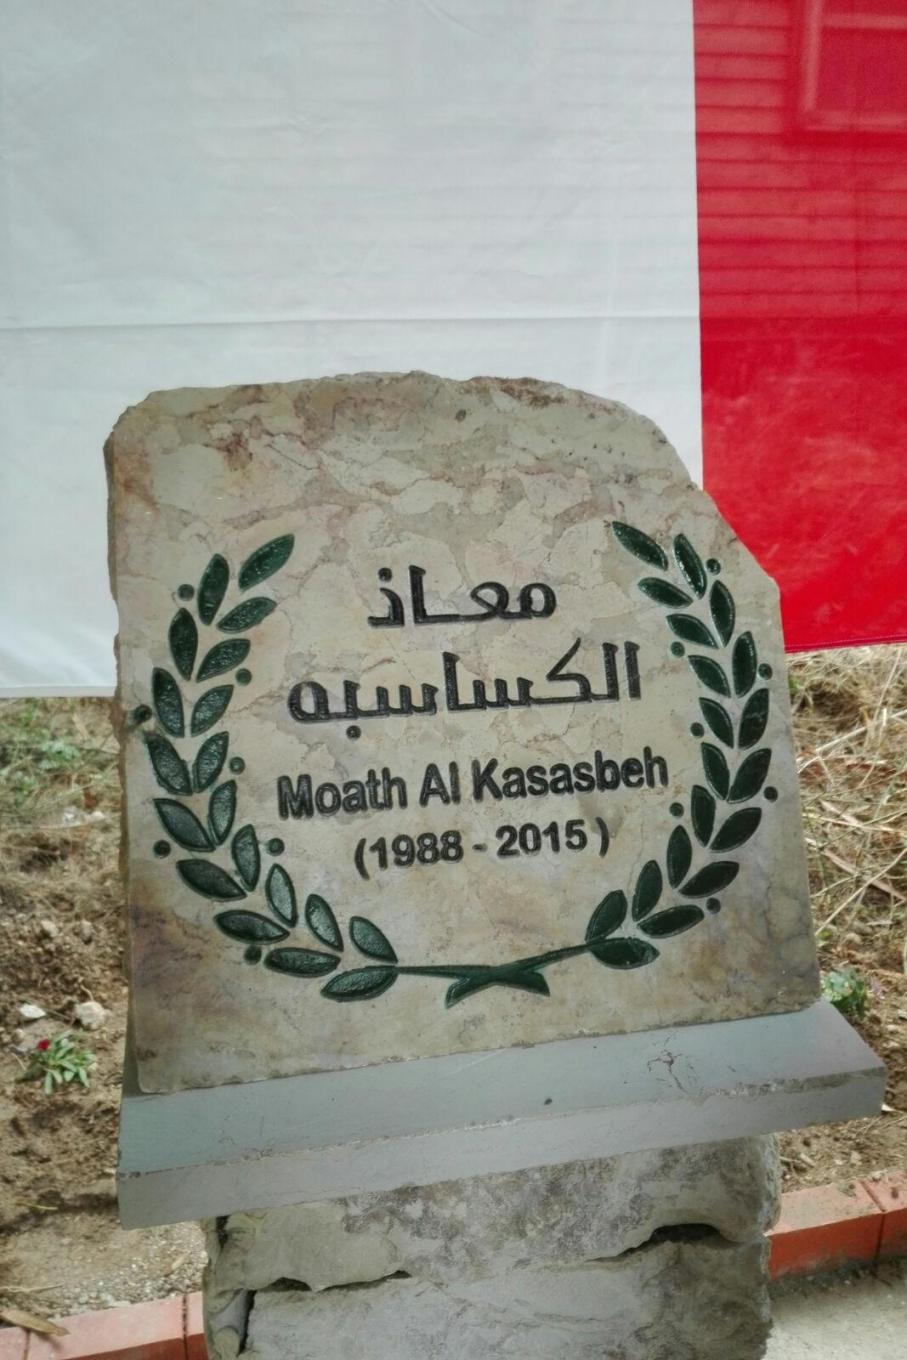 Memorial stone for Moath Al Kasasbeh